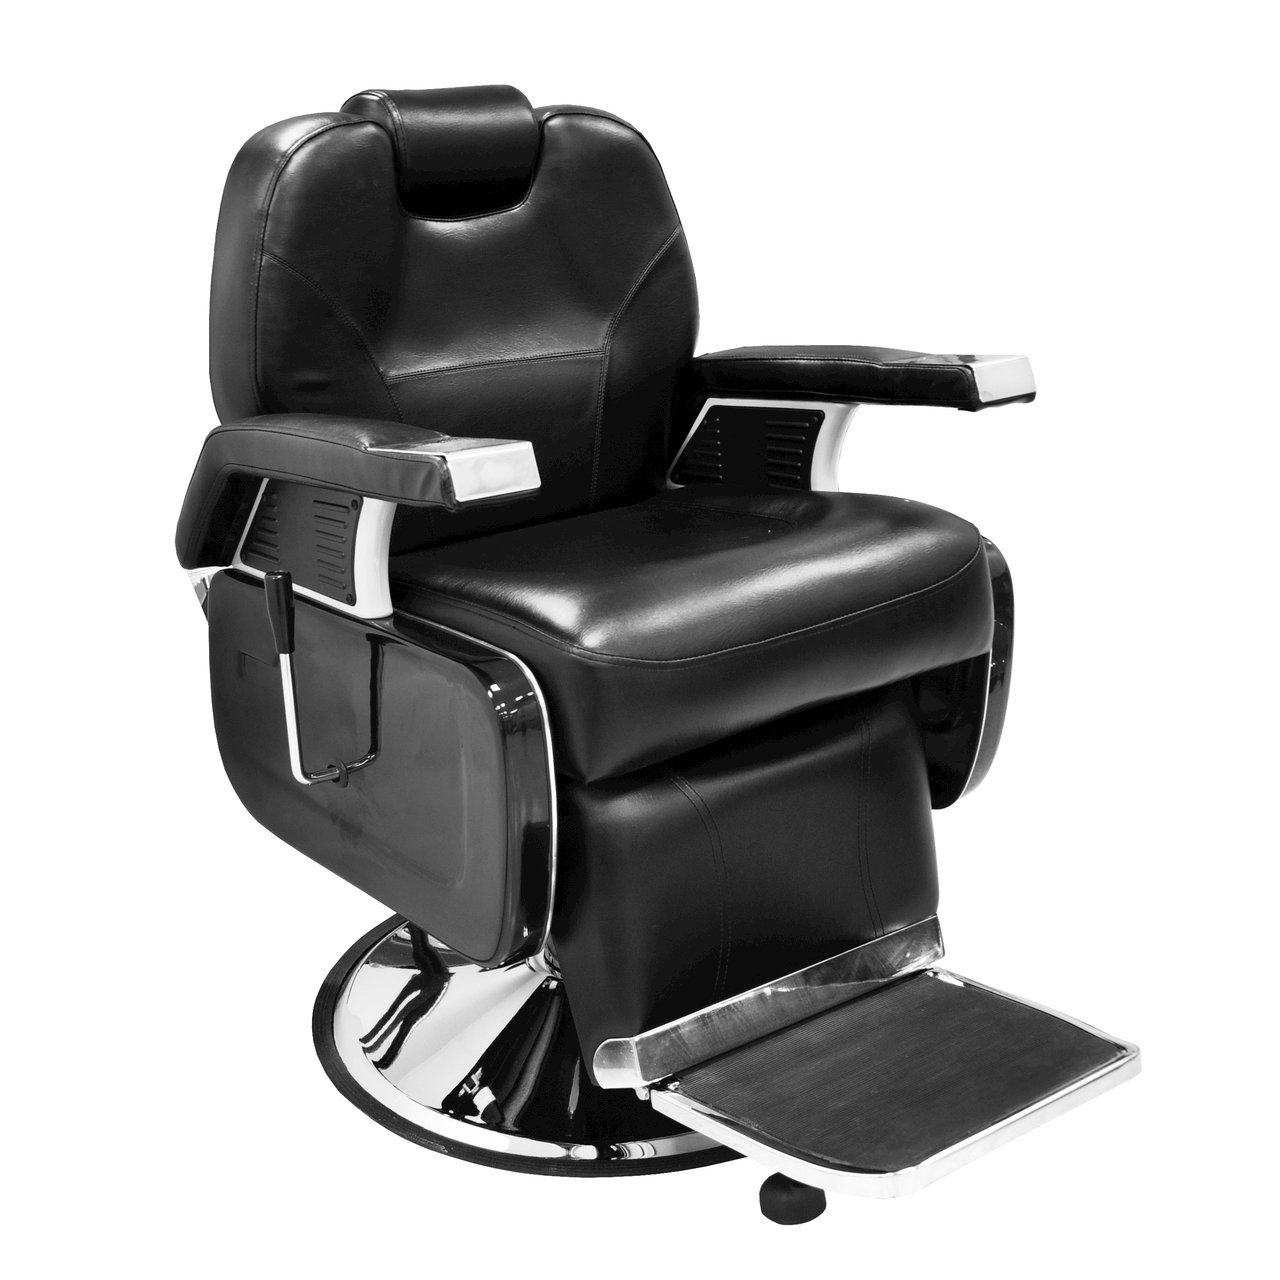 Picture of BUCHANAN TD22902 BARBER CHAIR